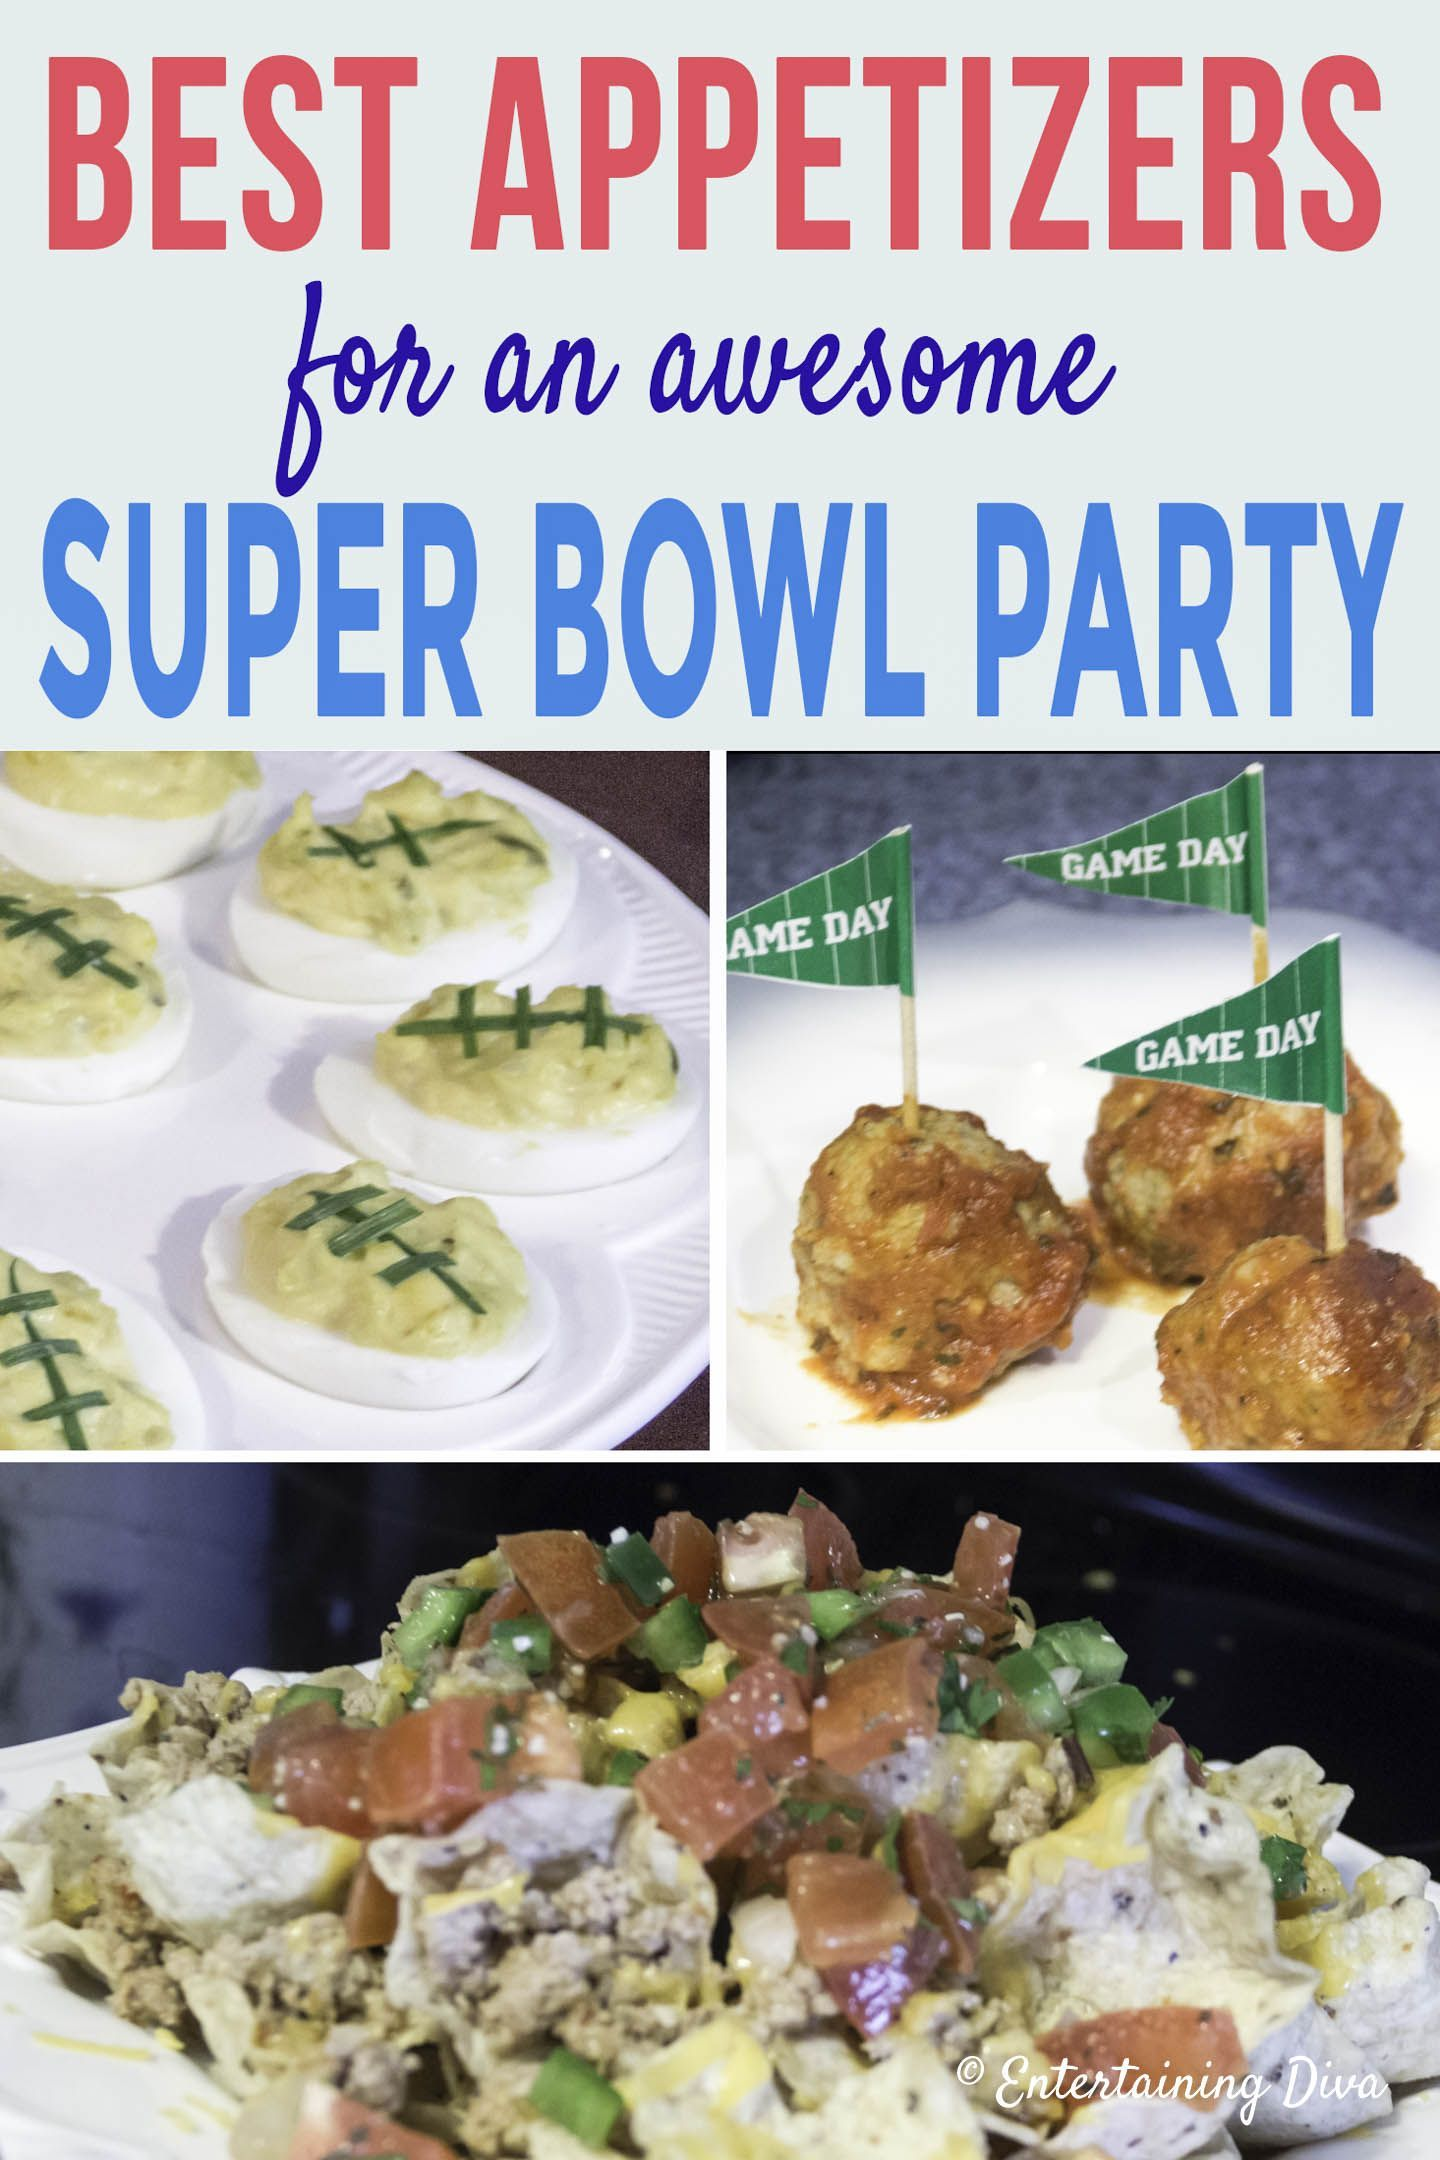 Super Bowl Party Menu Party Food Menu Football Party Foods